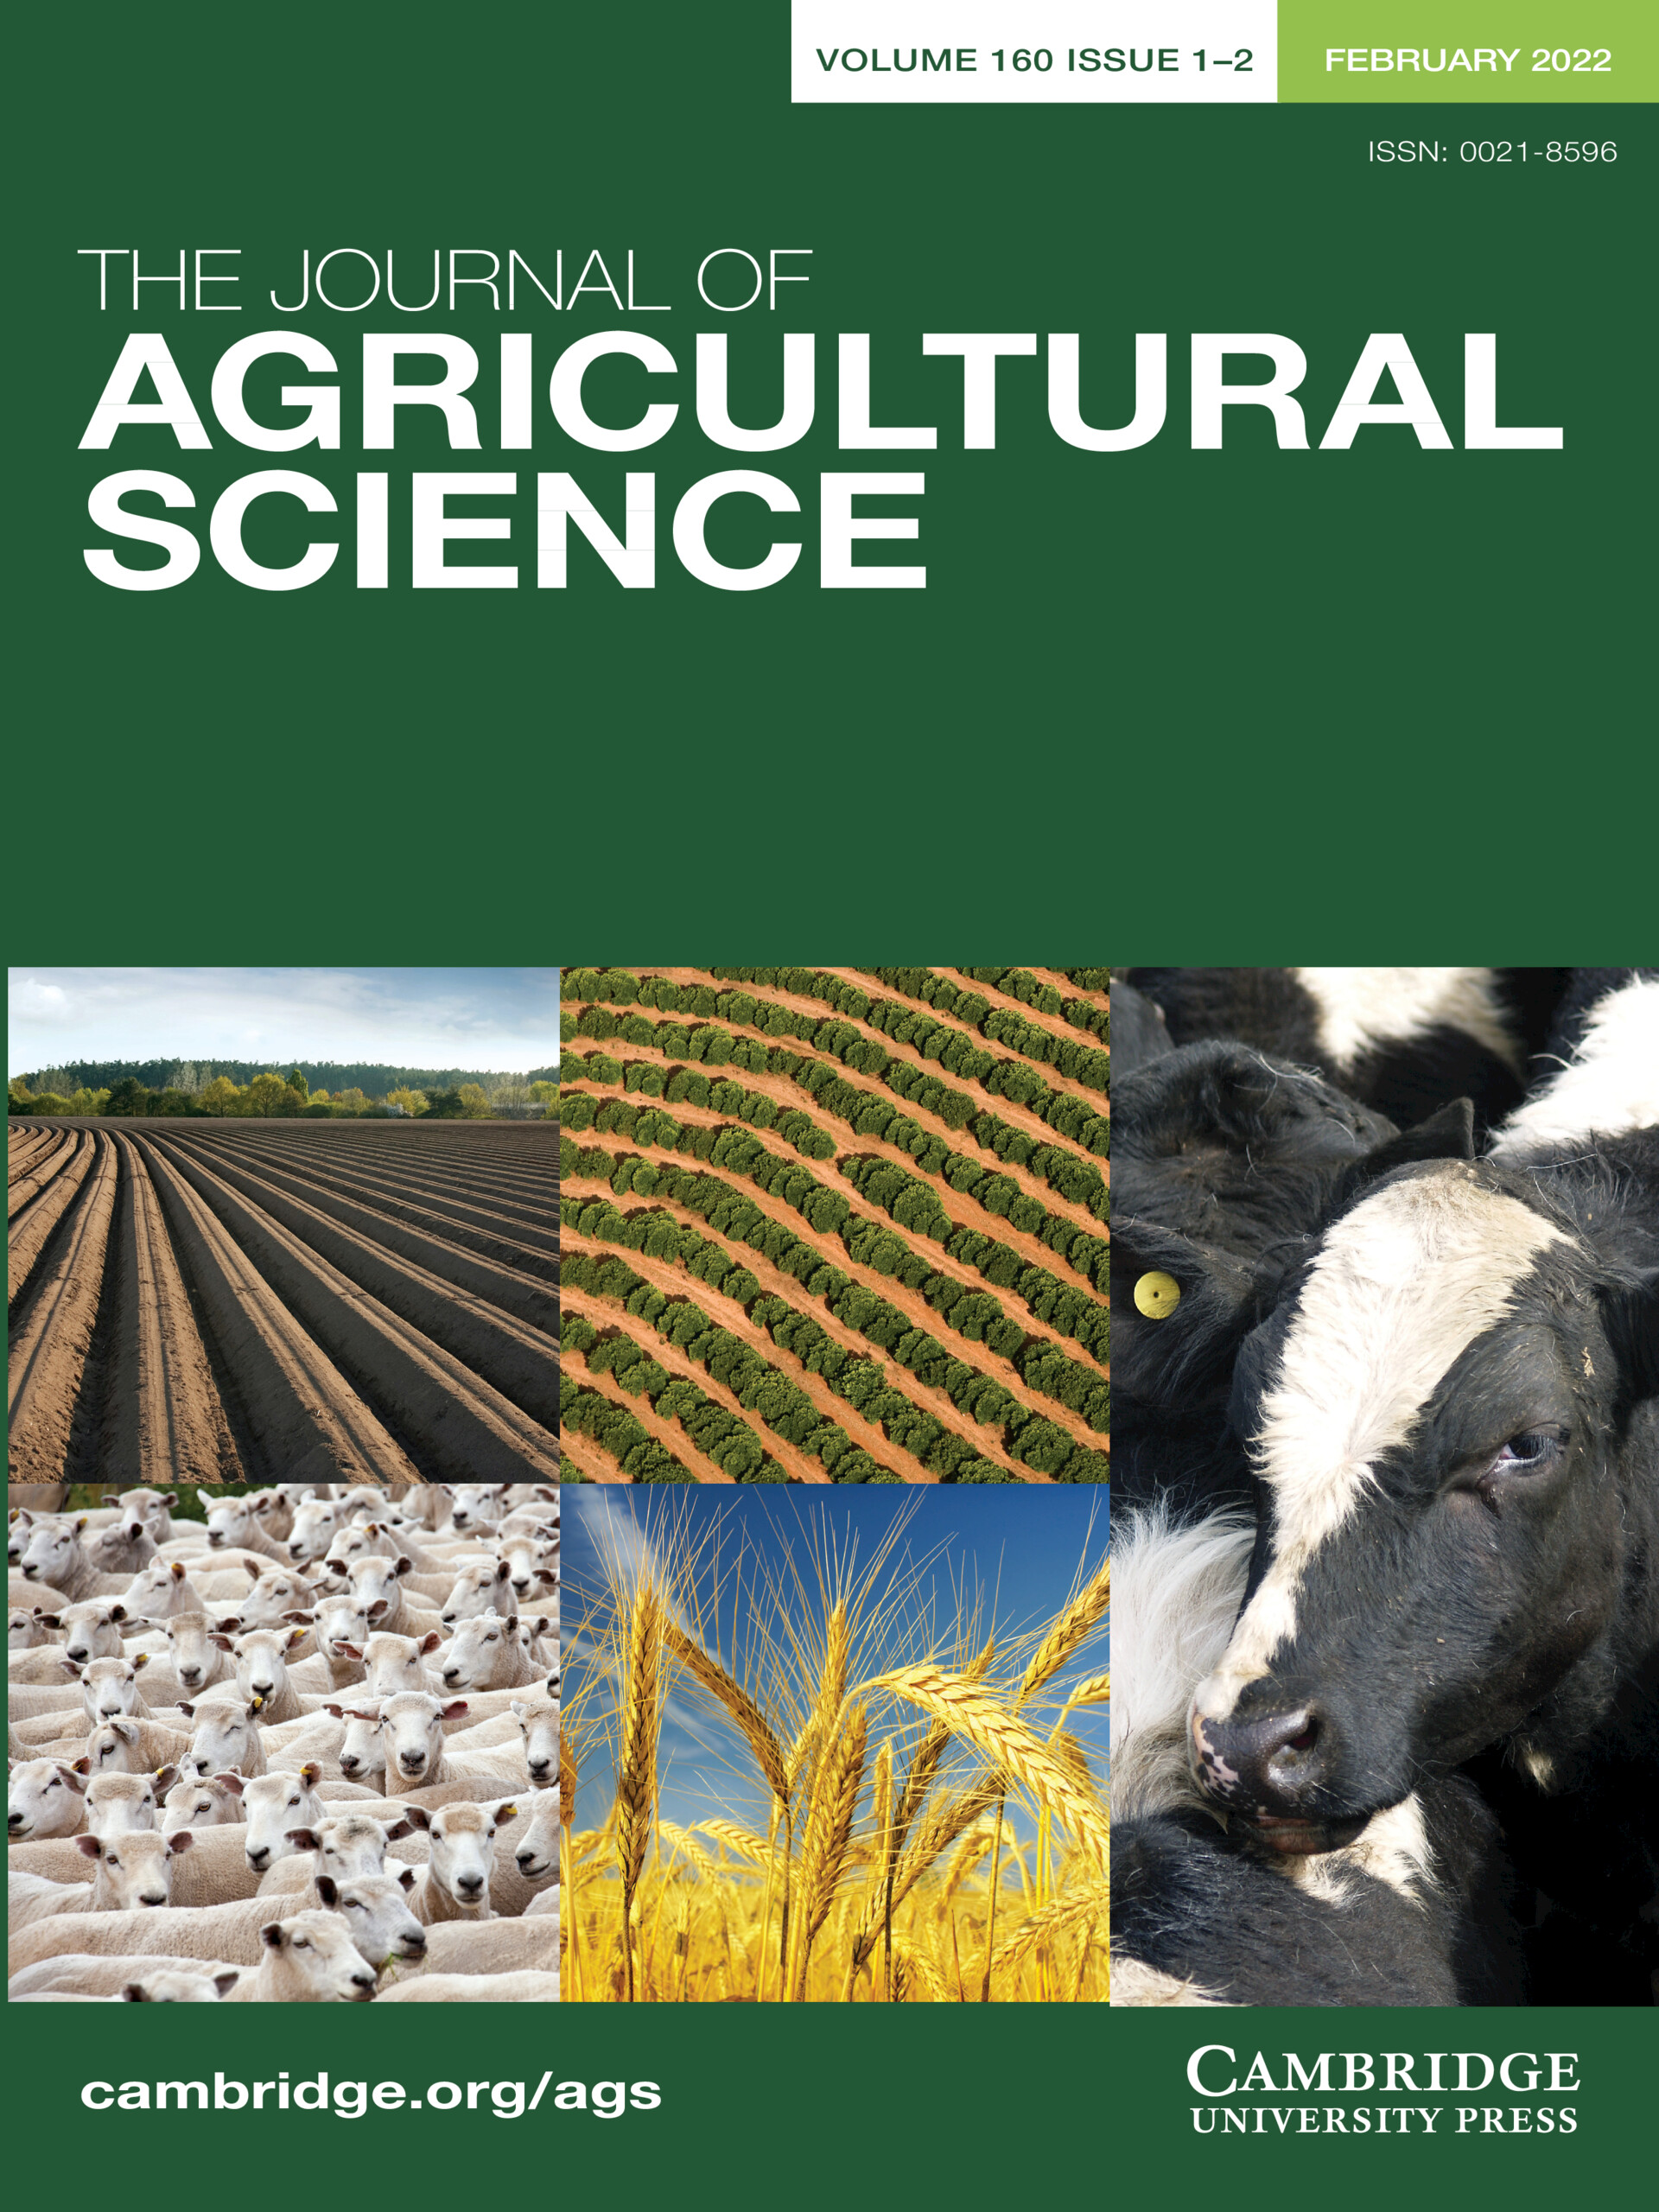 The Journal of Agricultural Science | Cambridge Core